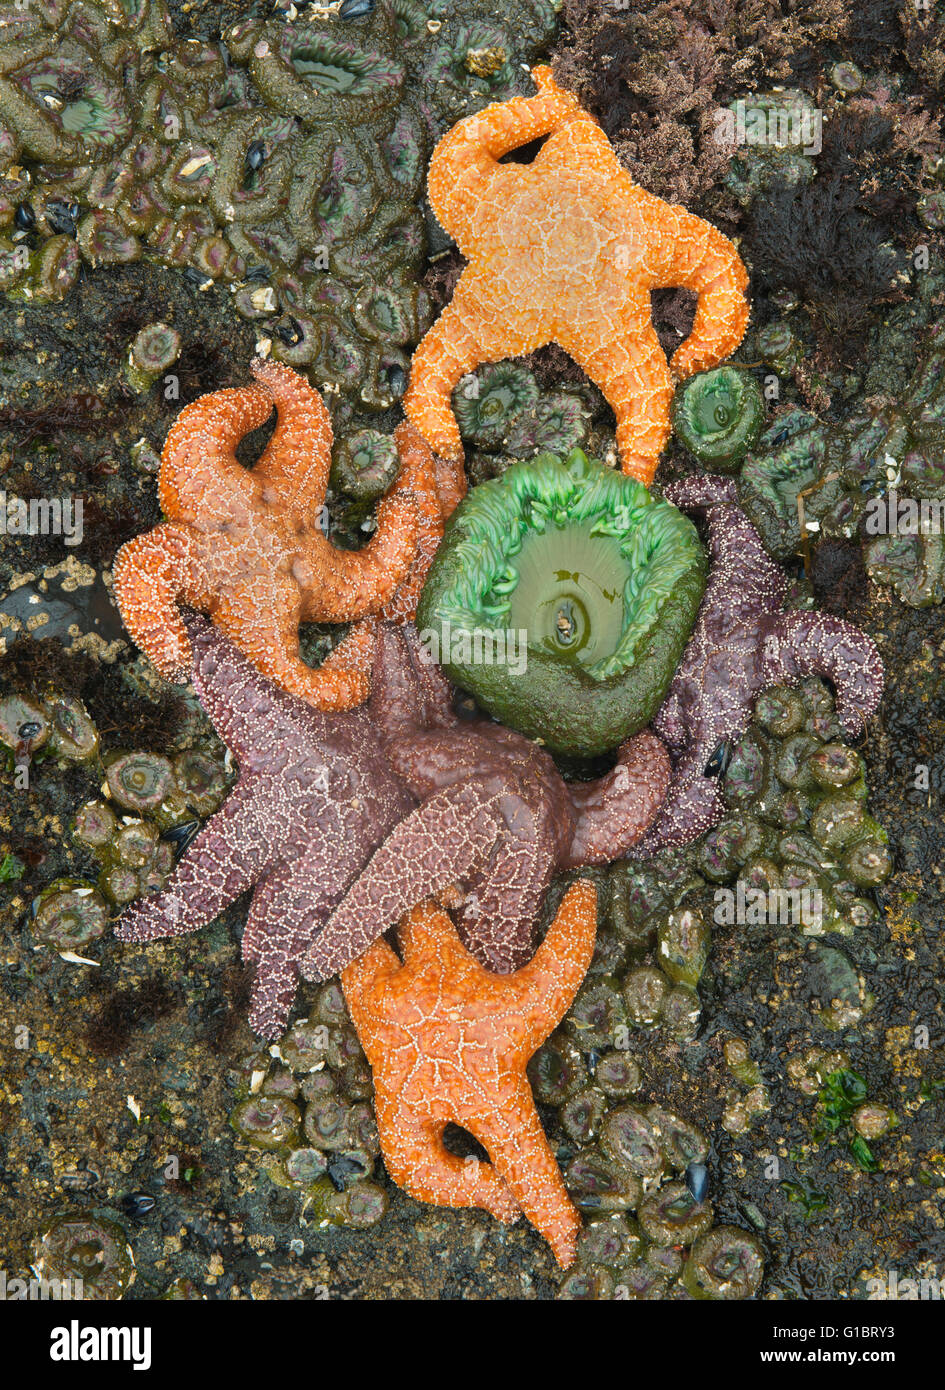 Ochre Sea Stars (Pisaster ochraceus) and anemones at low tide,  Shi Shi Beach, Olympic National Park, Washington - Stock Image